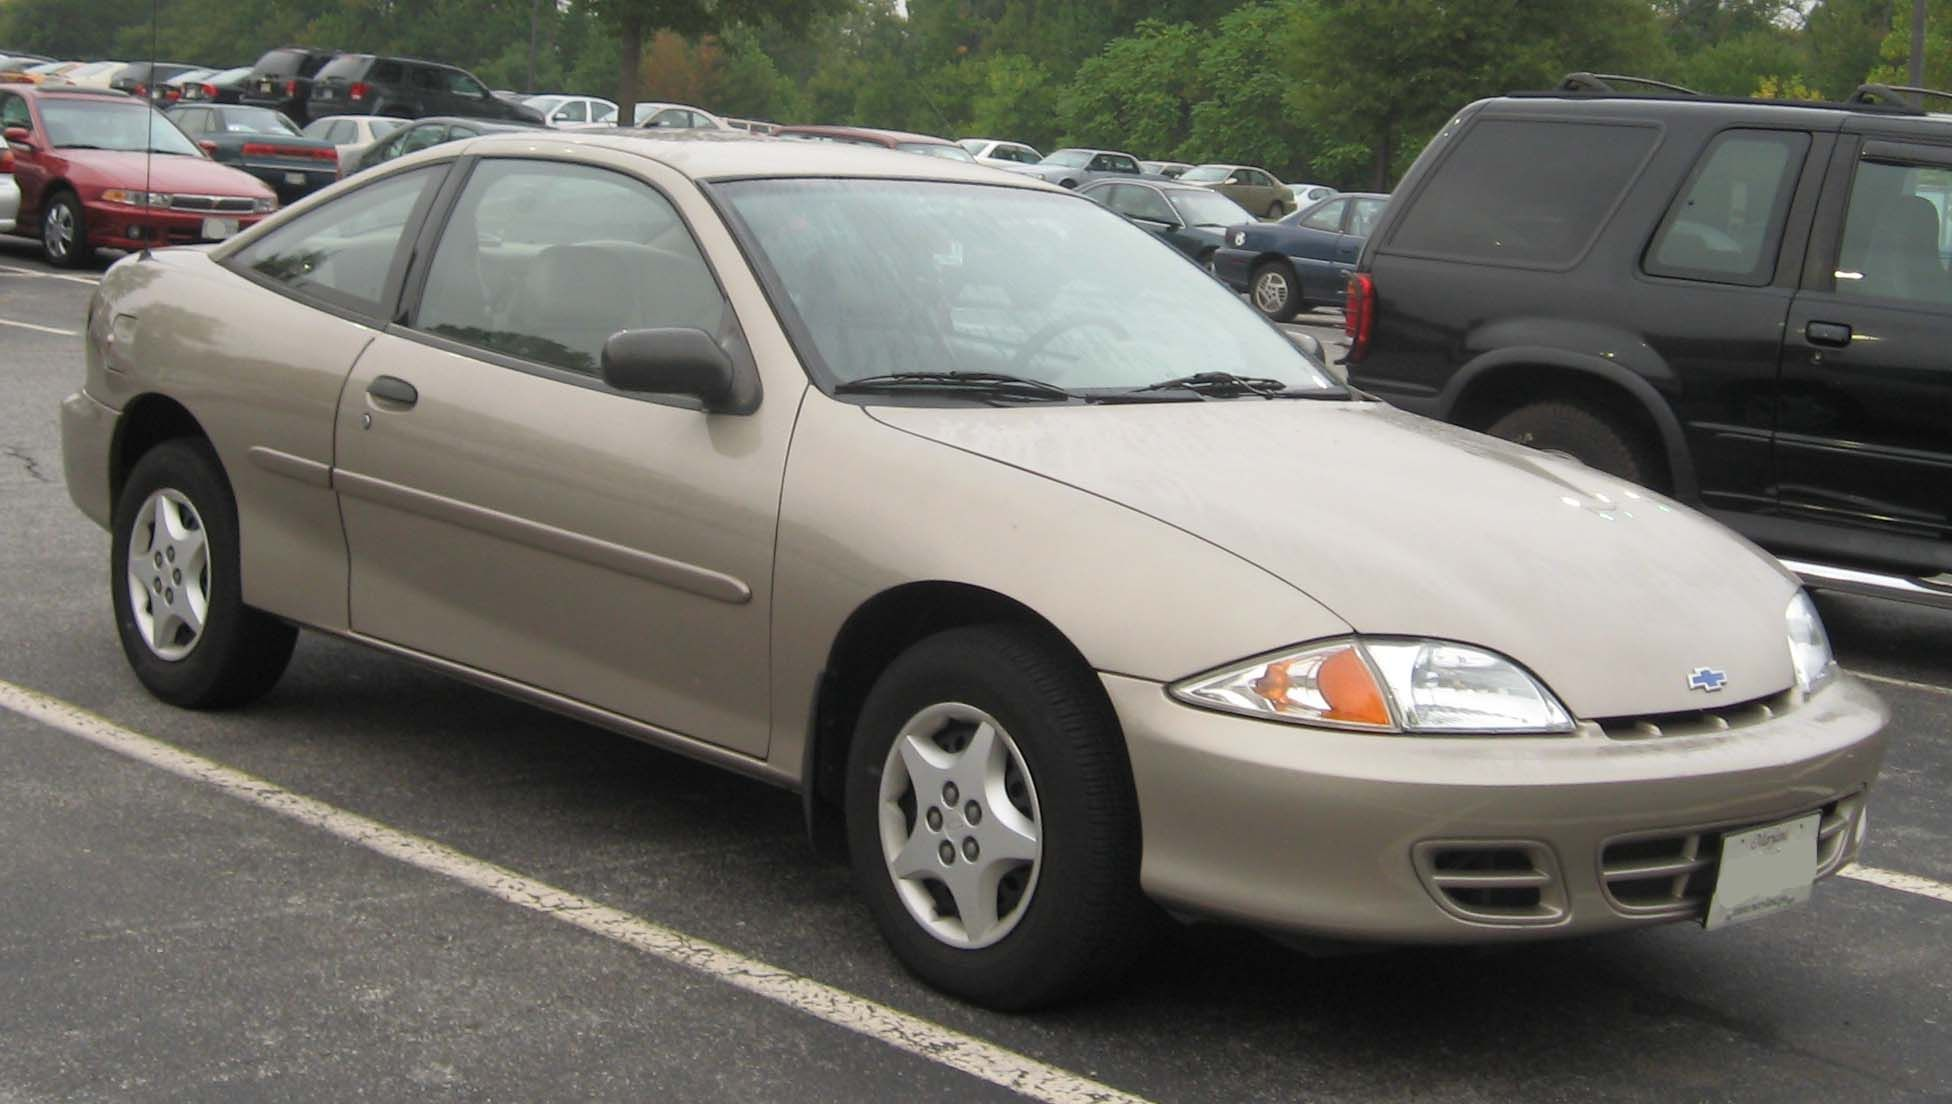 hight resolution of 2000 chevy cavalier first vehicle i owned i actually had to pay for mine looked like this but had an uber sporty tail fin on the back